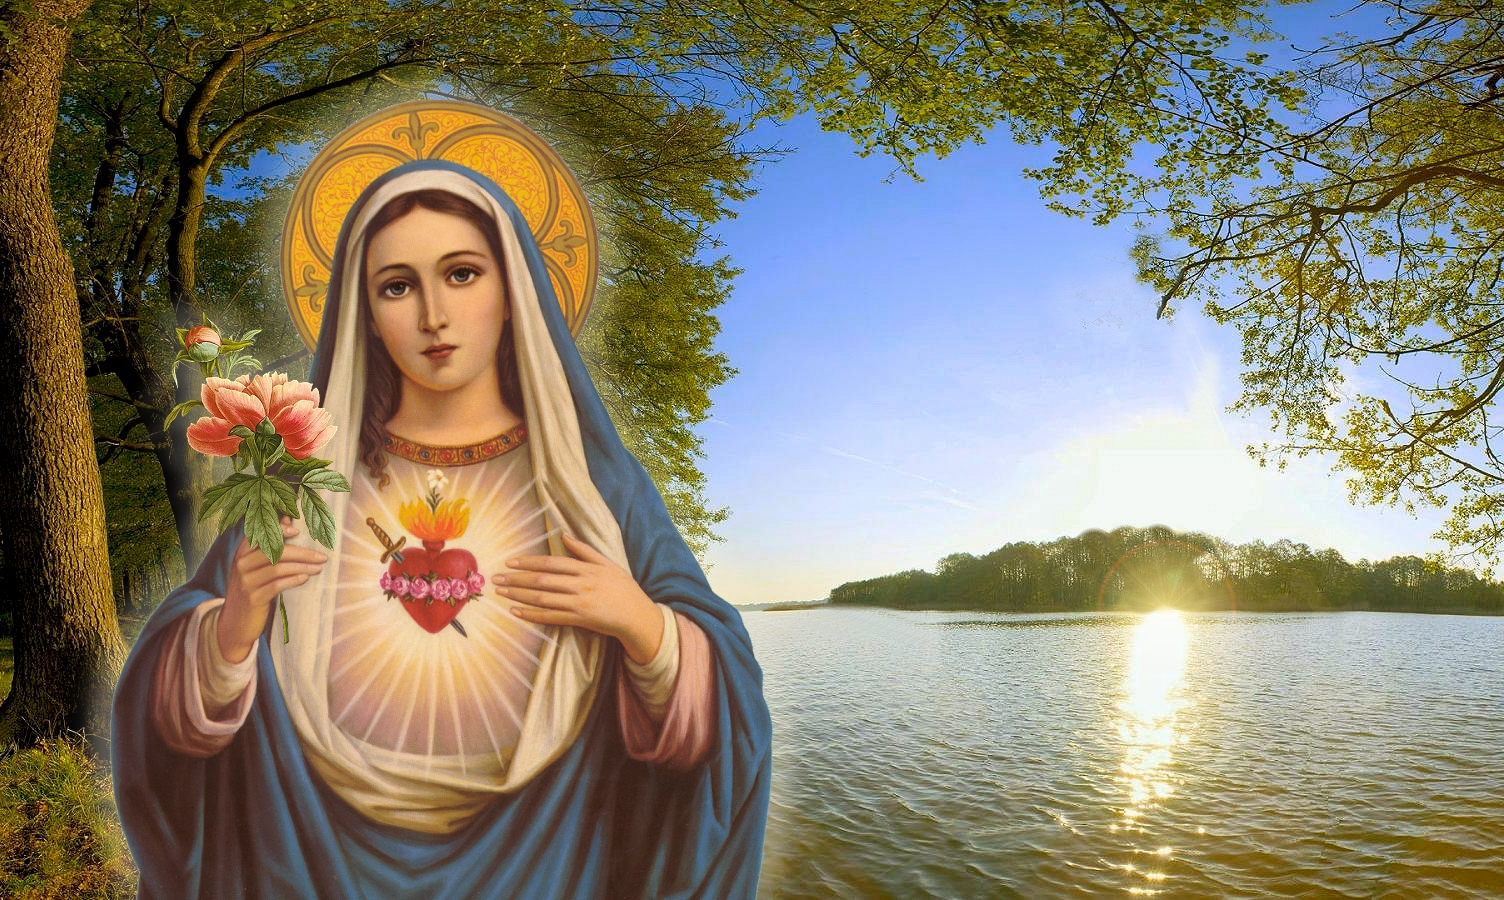 HOMILY FOR THE MEMORIAL OF THE IMMACULATE HEART OF MARY (12/6/2021)